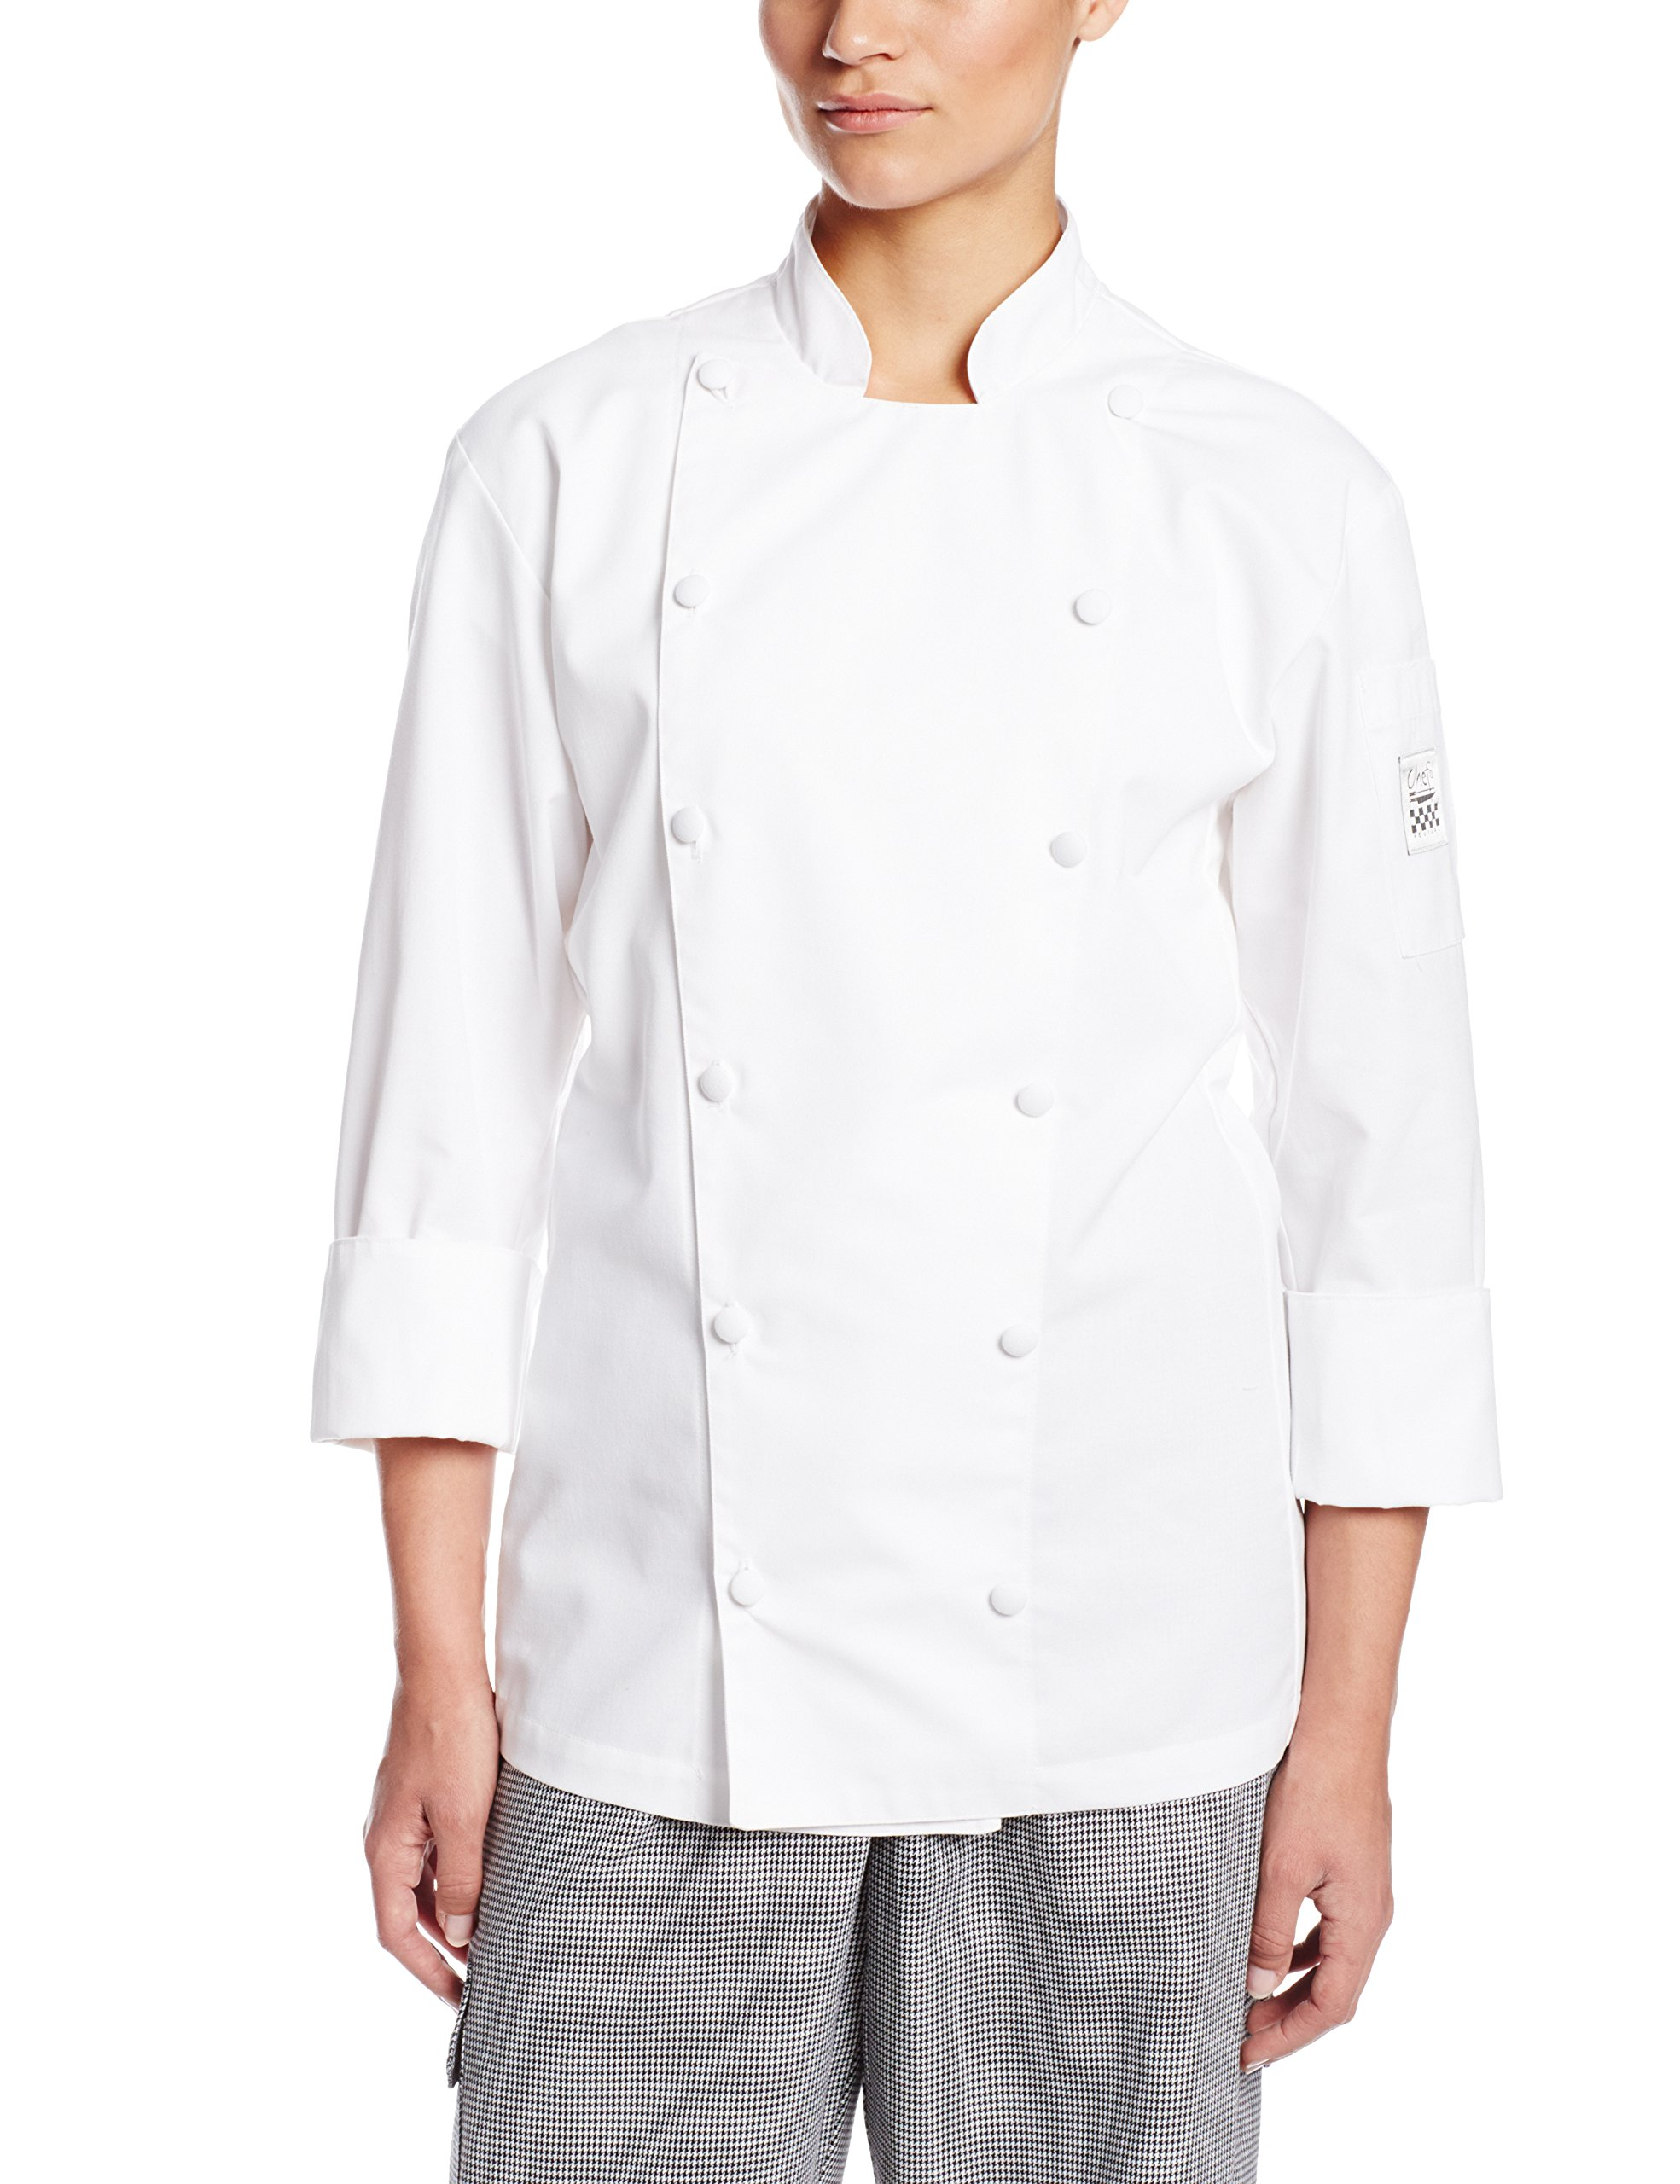 Chef Revival LJ025 Chef-Tex Poly Cotton Ladies Cuisinier Long Sleeve Jacket with Cloth Covered Button, 2X-Large, White by Chef Revival